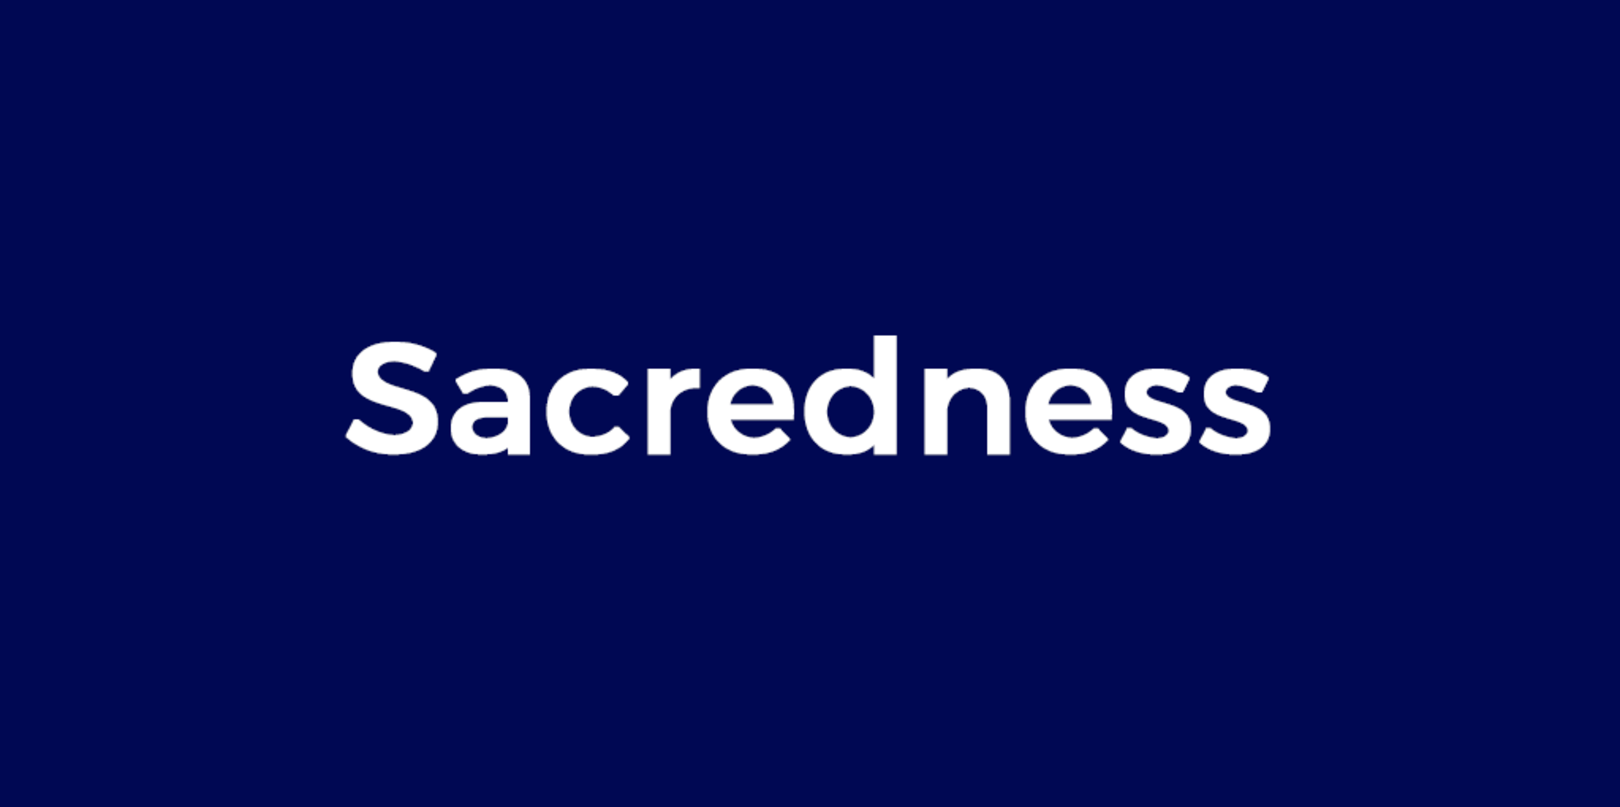 Find out about and reclaim your sacredness - thumbnail version